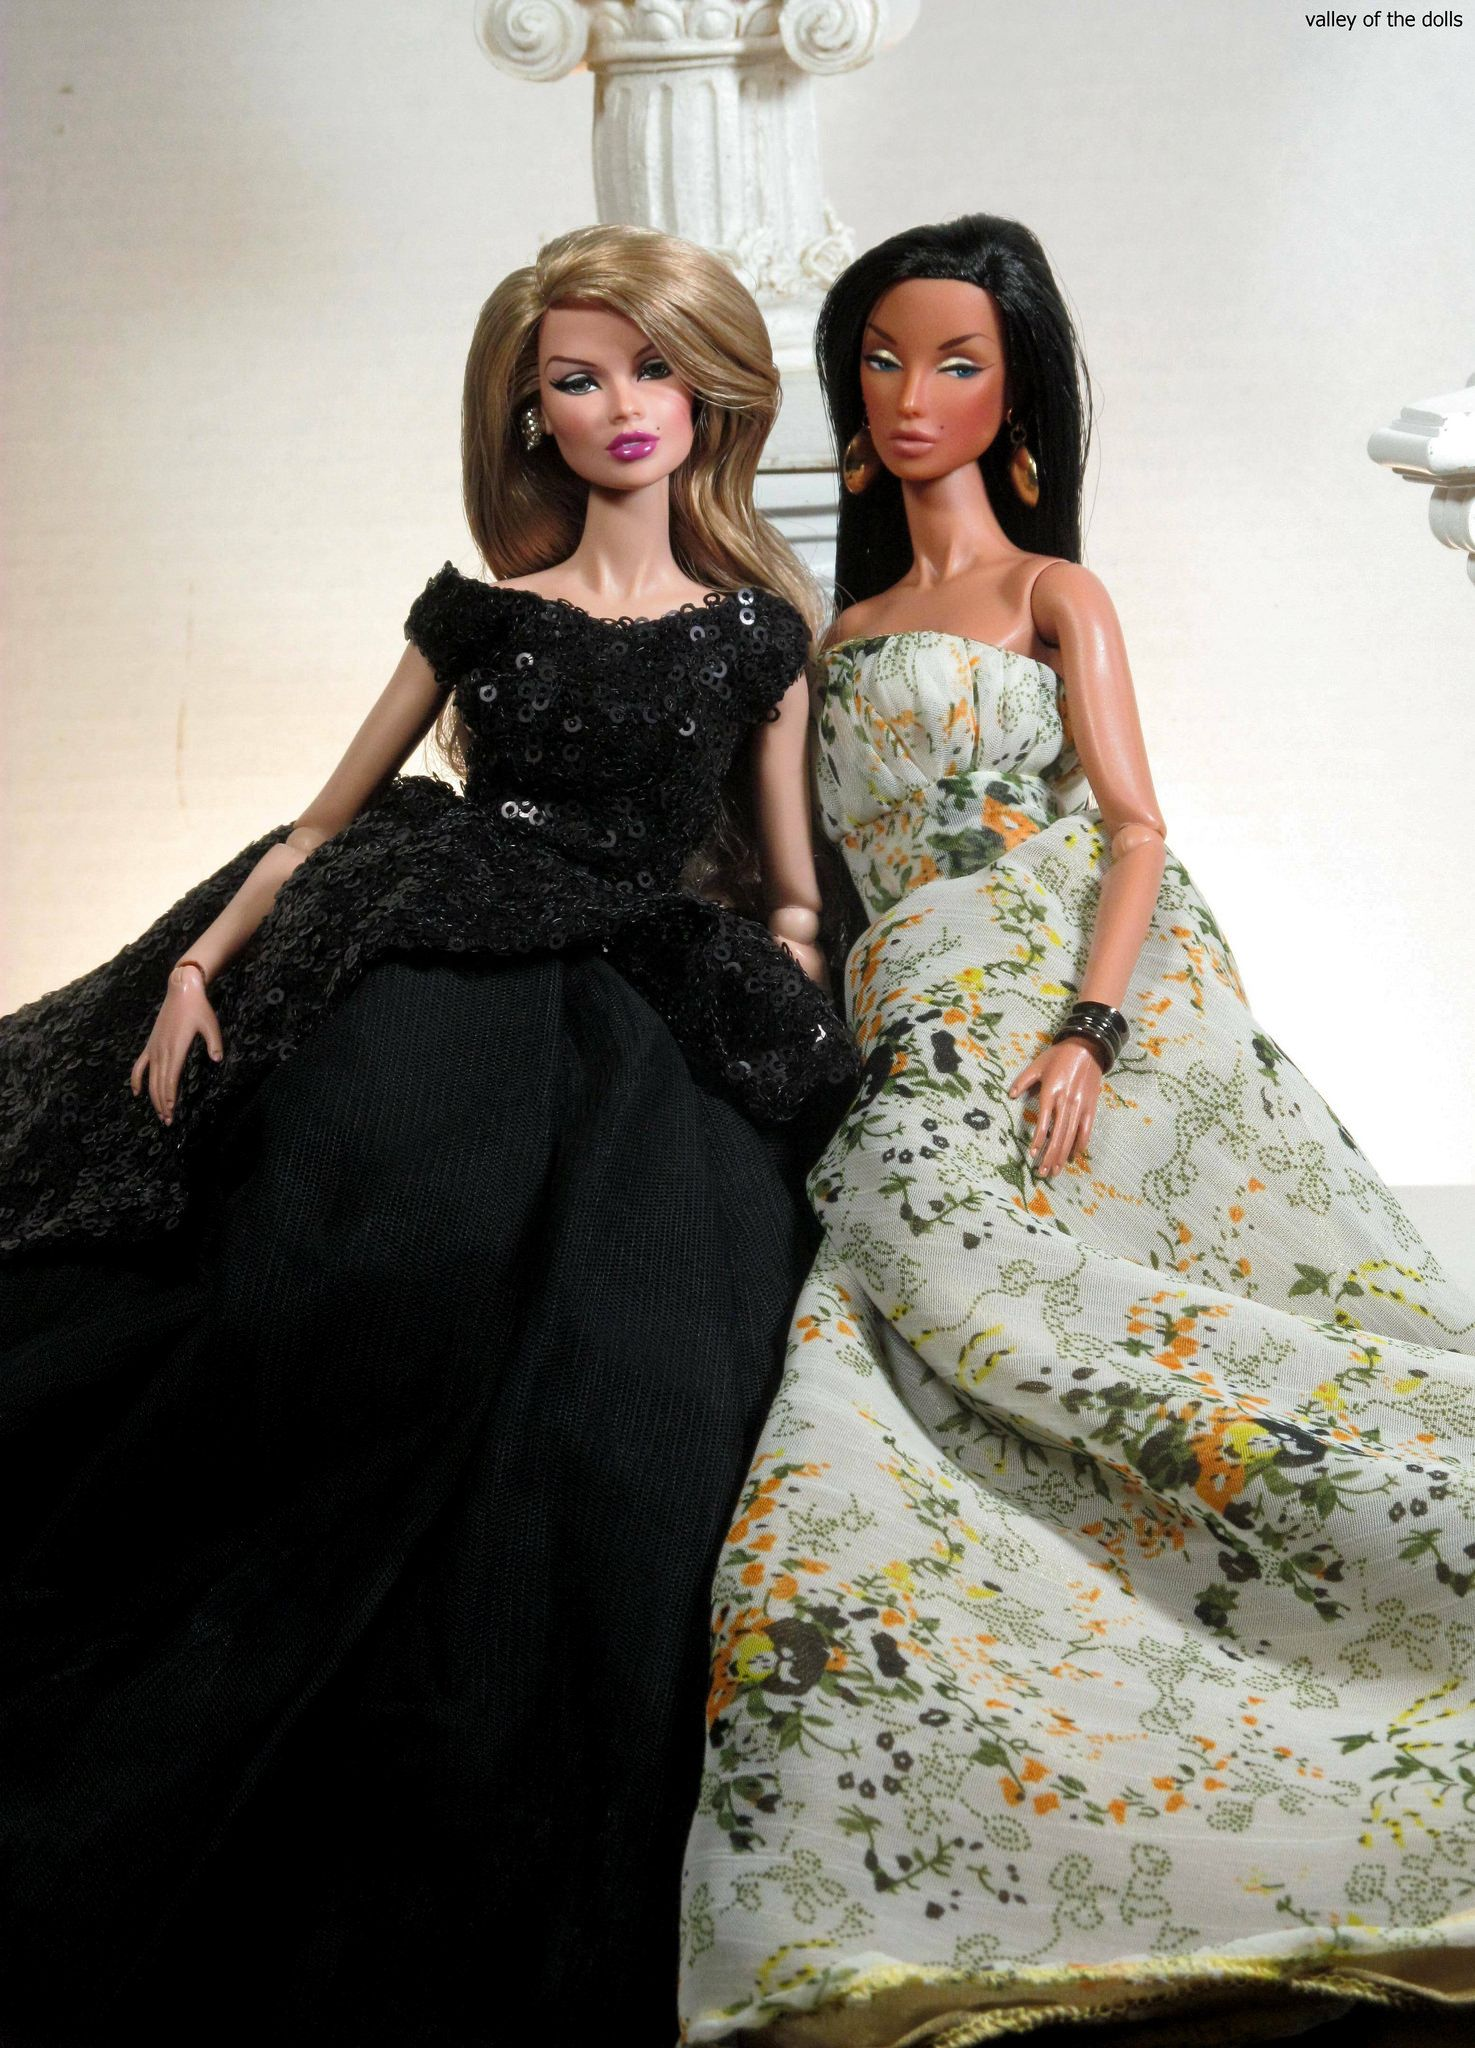 https://flic.kr/p/zHSUr1 | Fashion Day | Discreet and Vanessa are modeling gowns!